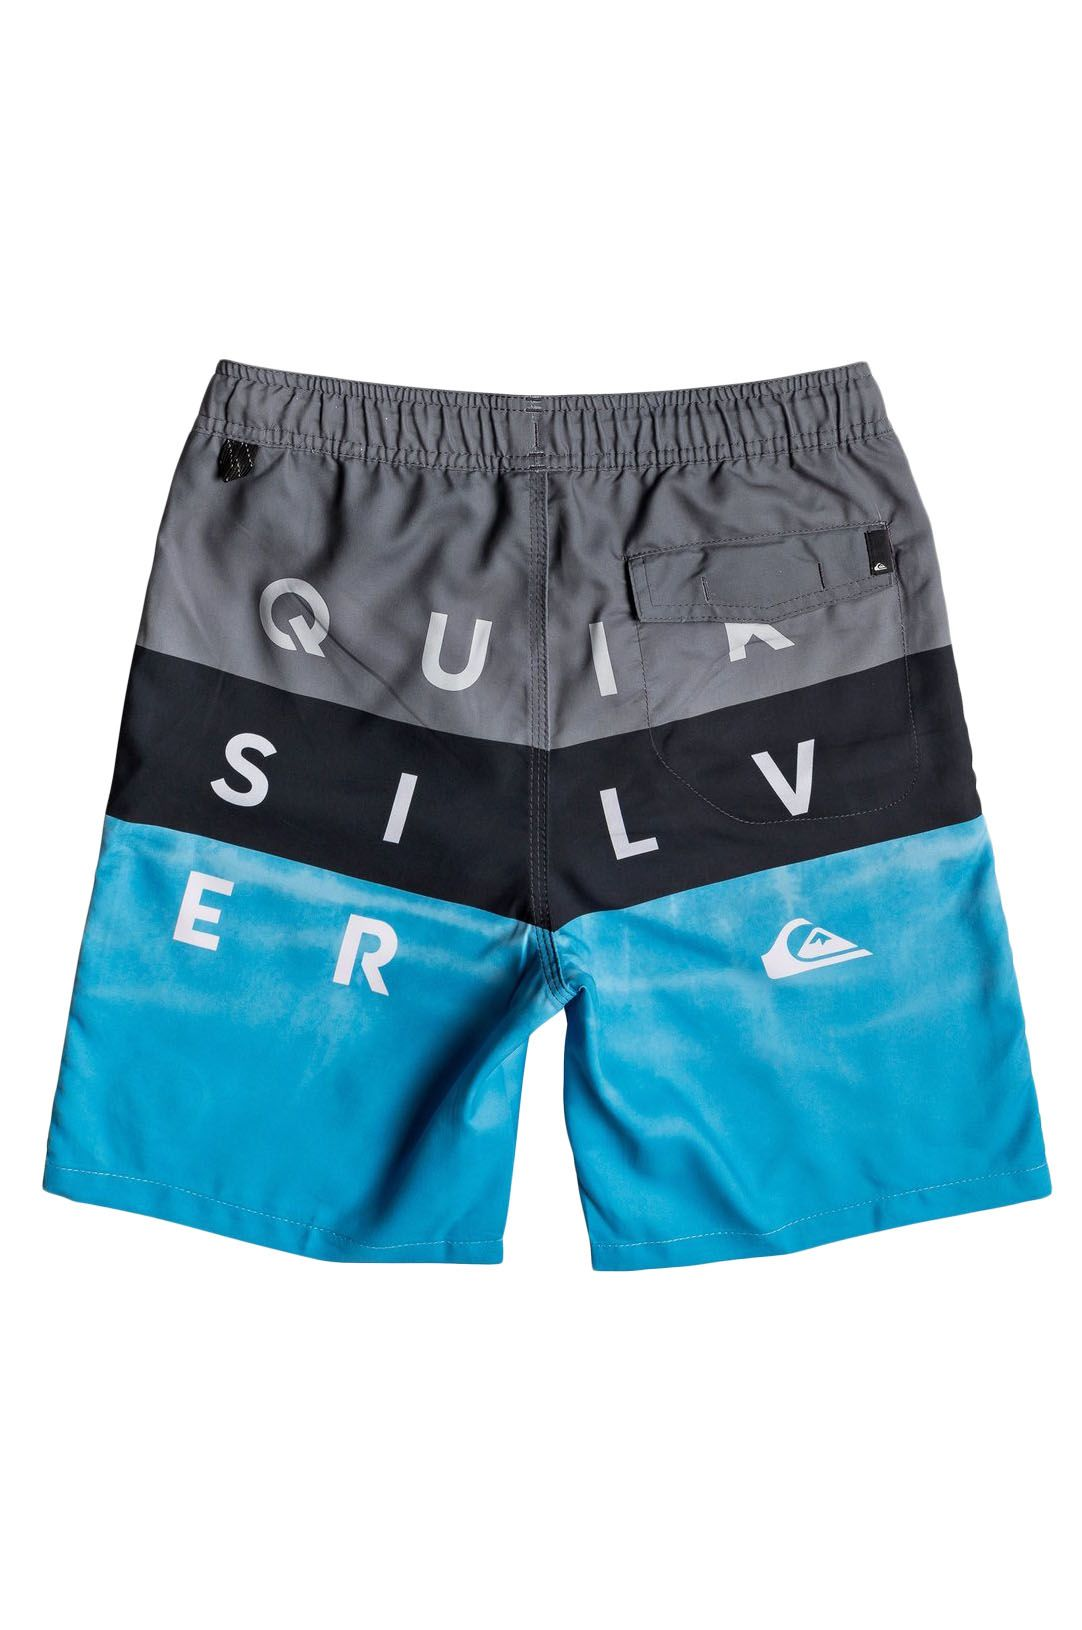 Volleys Quiksilver WORDBLKVLYTH15 B JAMV Iron Gate